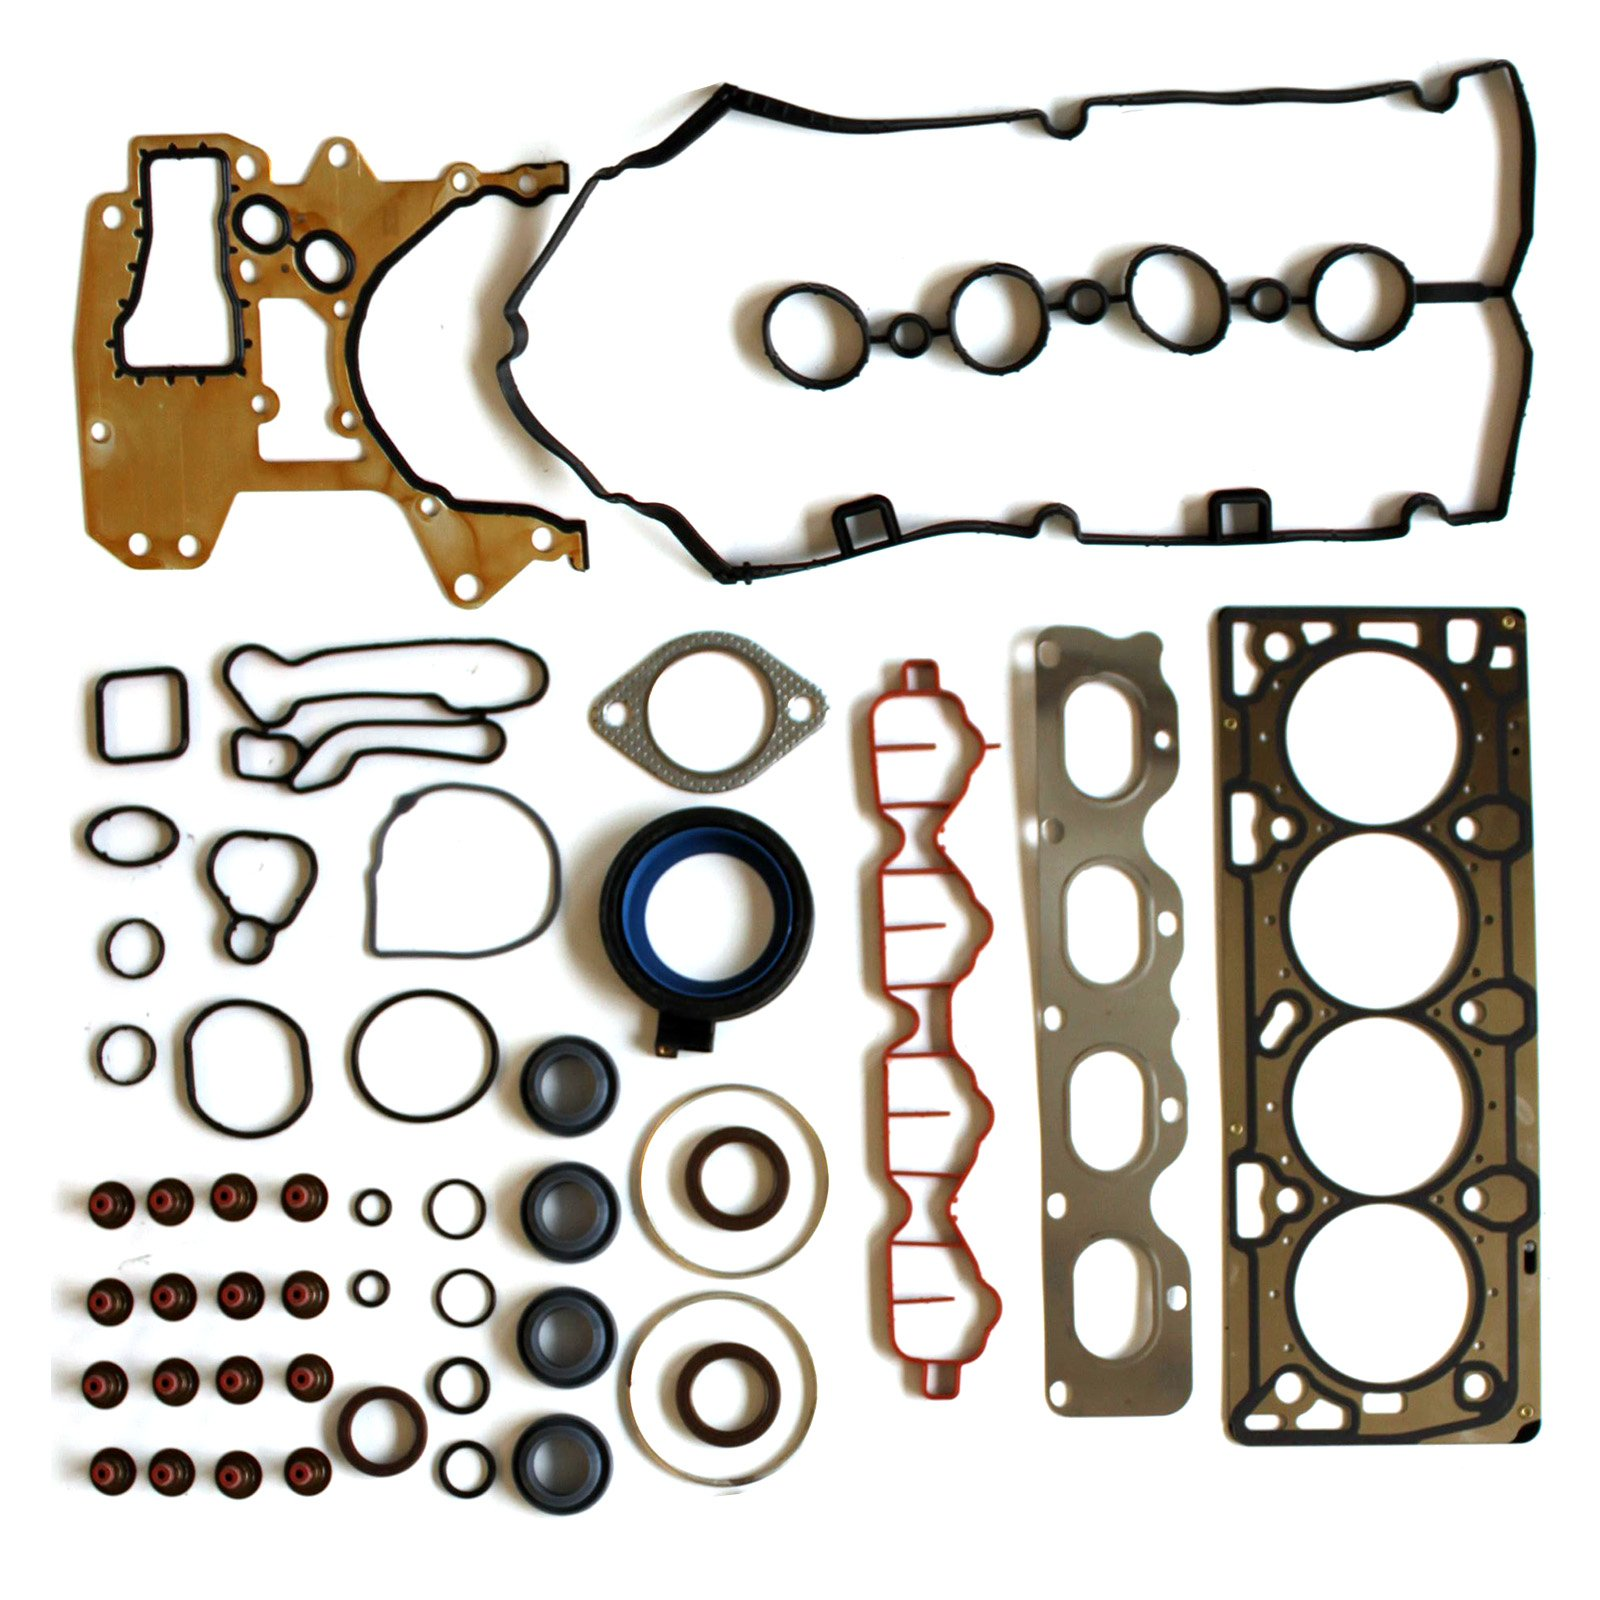 Cheap Pontiac 3 4 Engine Find Deals On Line At Fiero Oil Pan Get Quotations Eccpp Head Gasket Set For 2 Lxv Vin E 2009 2011 Chevrolet Aveo Aveo5